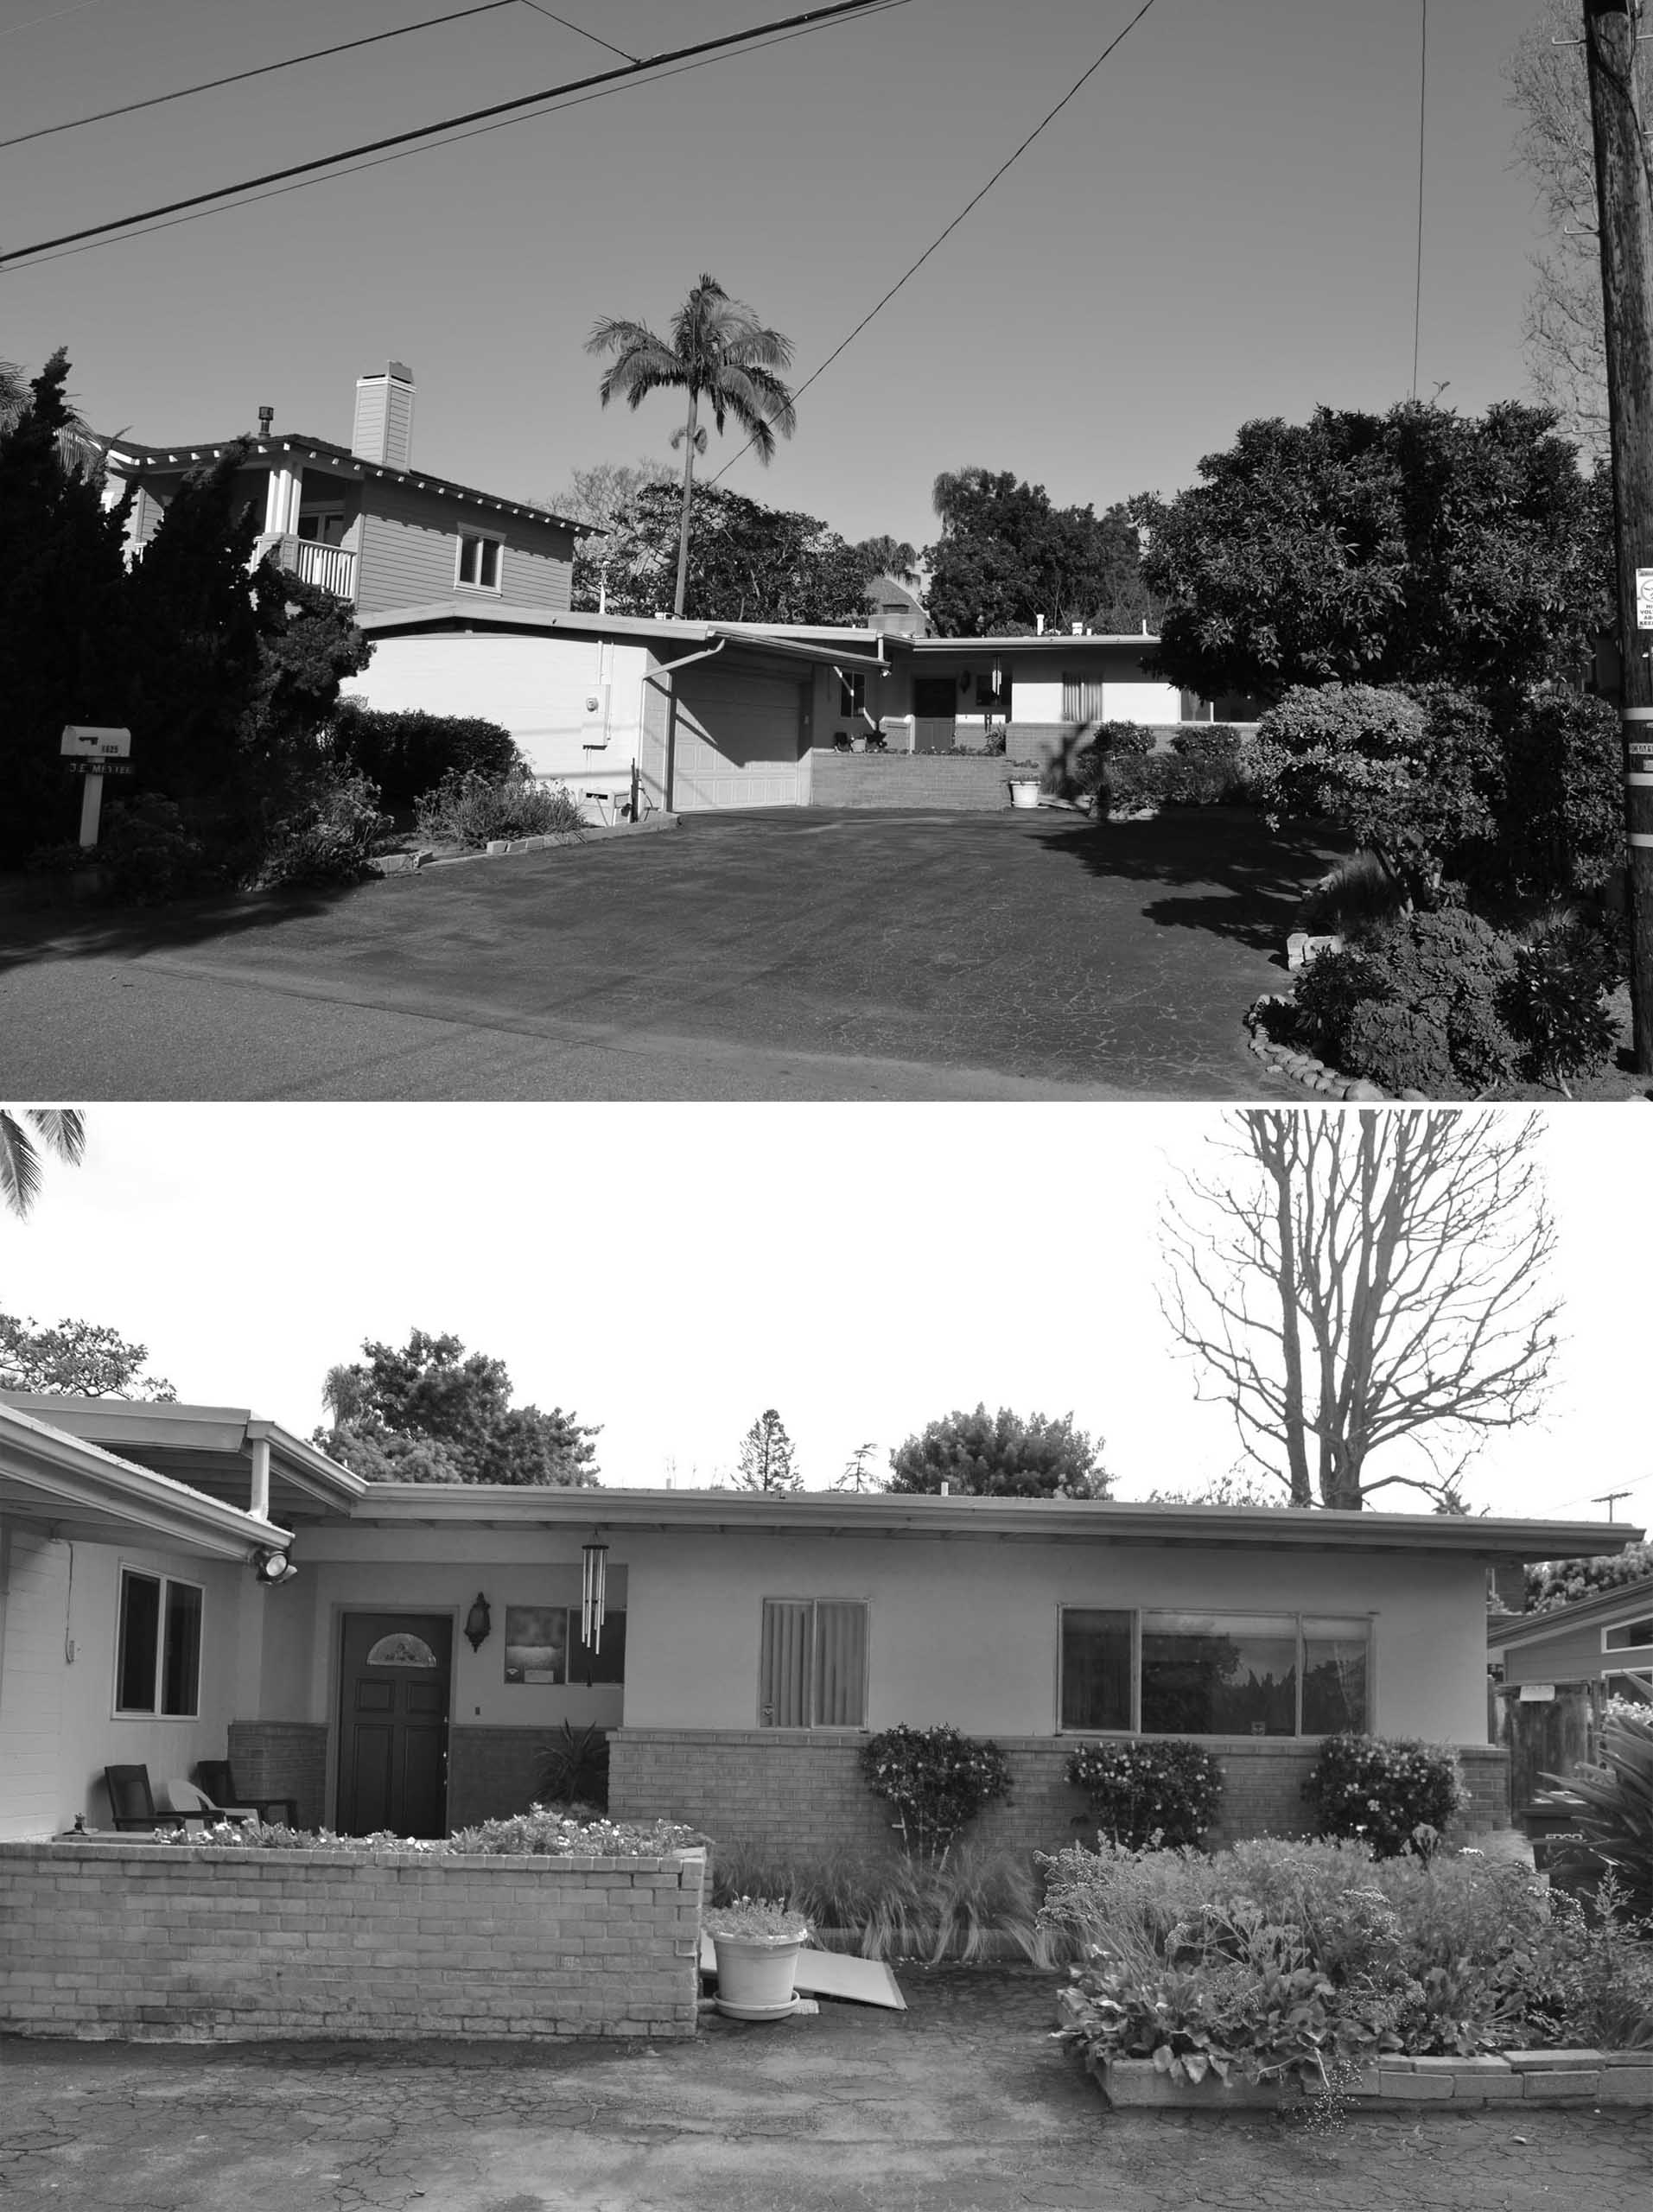 BEFORE PHOTOS - The original 1957 front yard was had a large asphalt driveway with a garage to the side, while the front door was located behind a low brick wall.